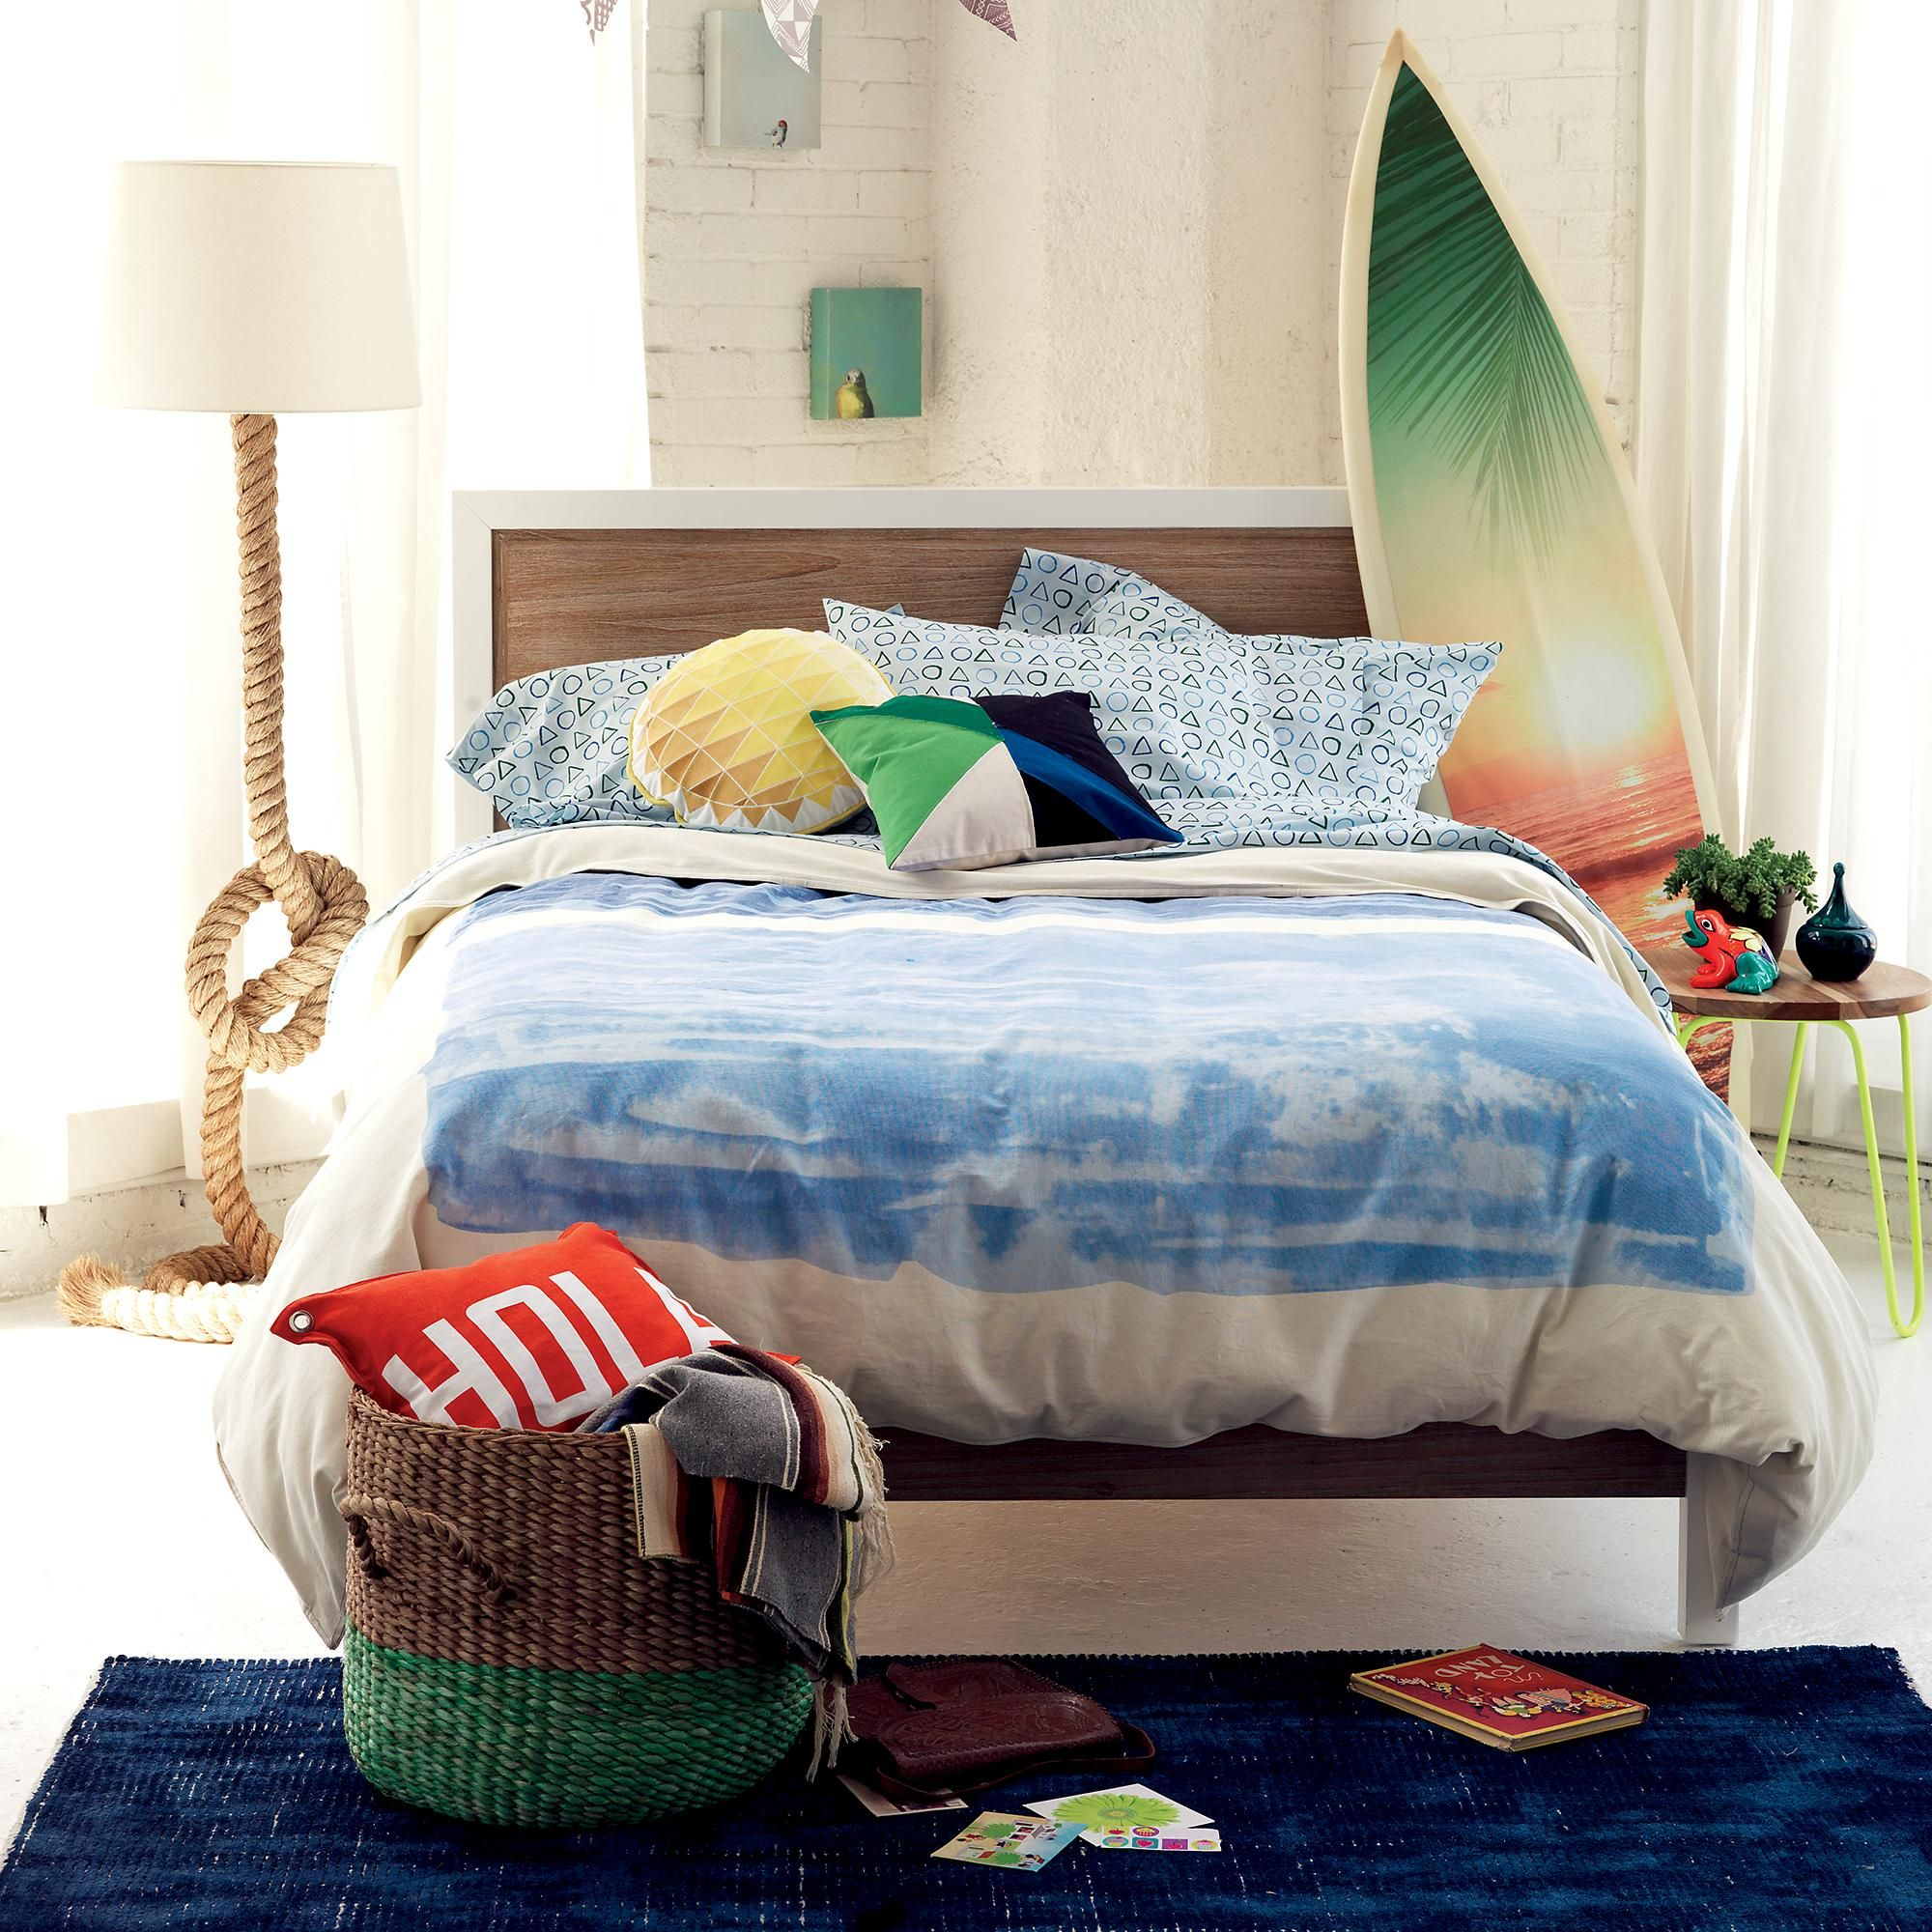 Laguna Duvet Cover The Land of Nod (With images